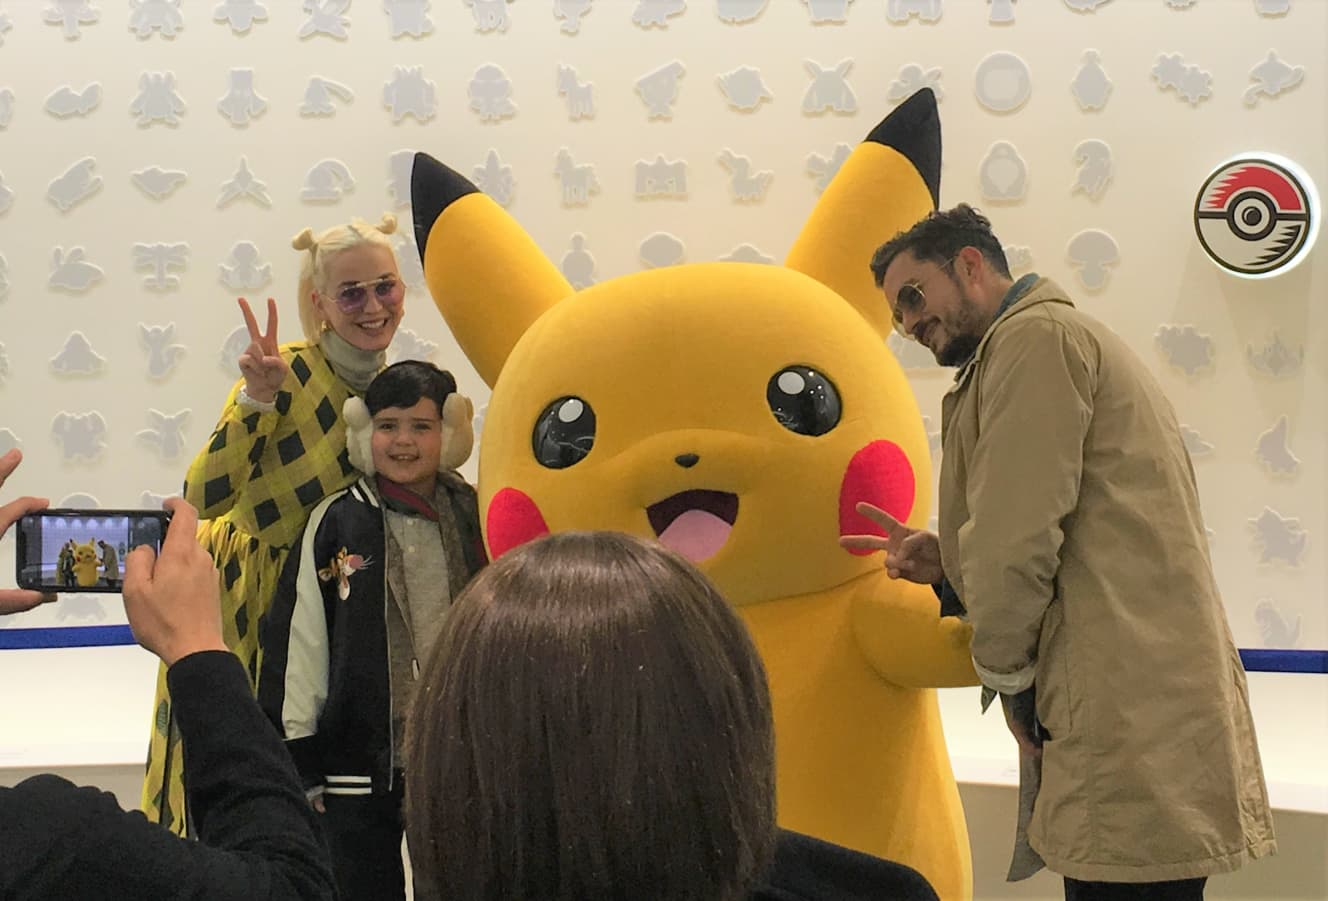 Katy Perry and Orlando Bloom visit Pokemon Cafe in Japan